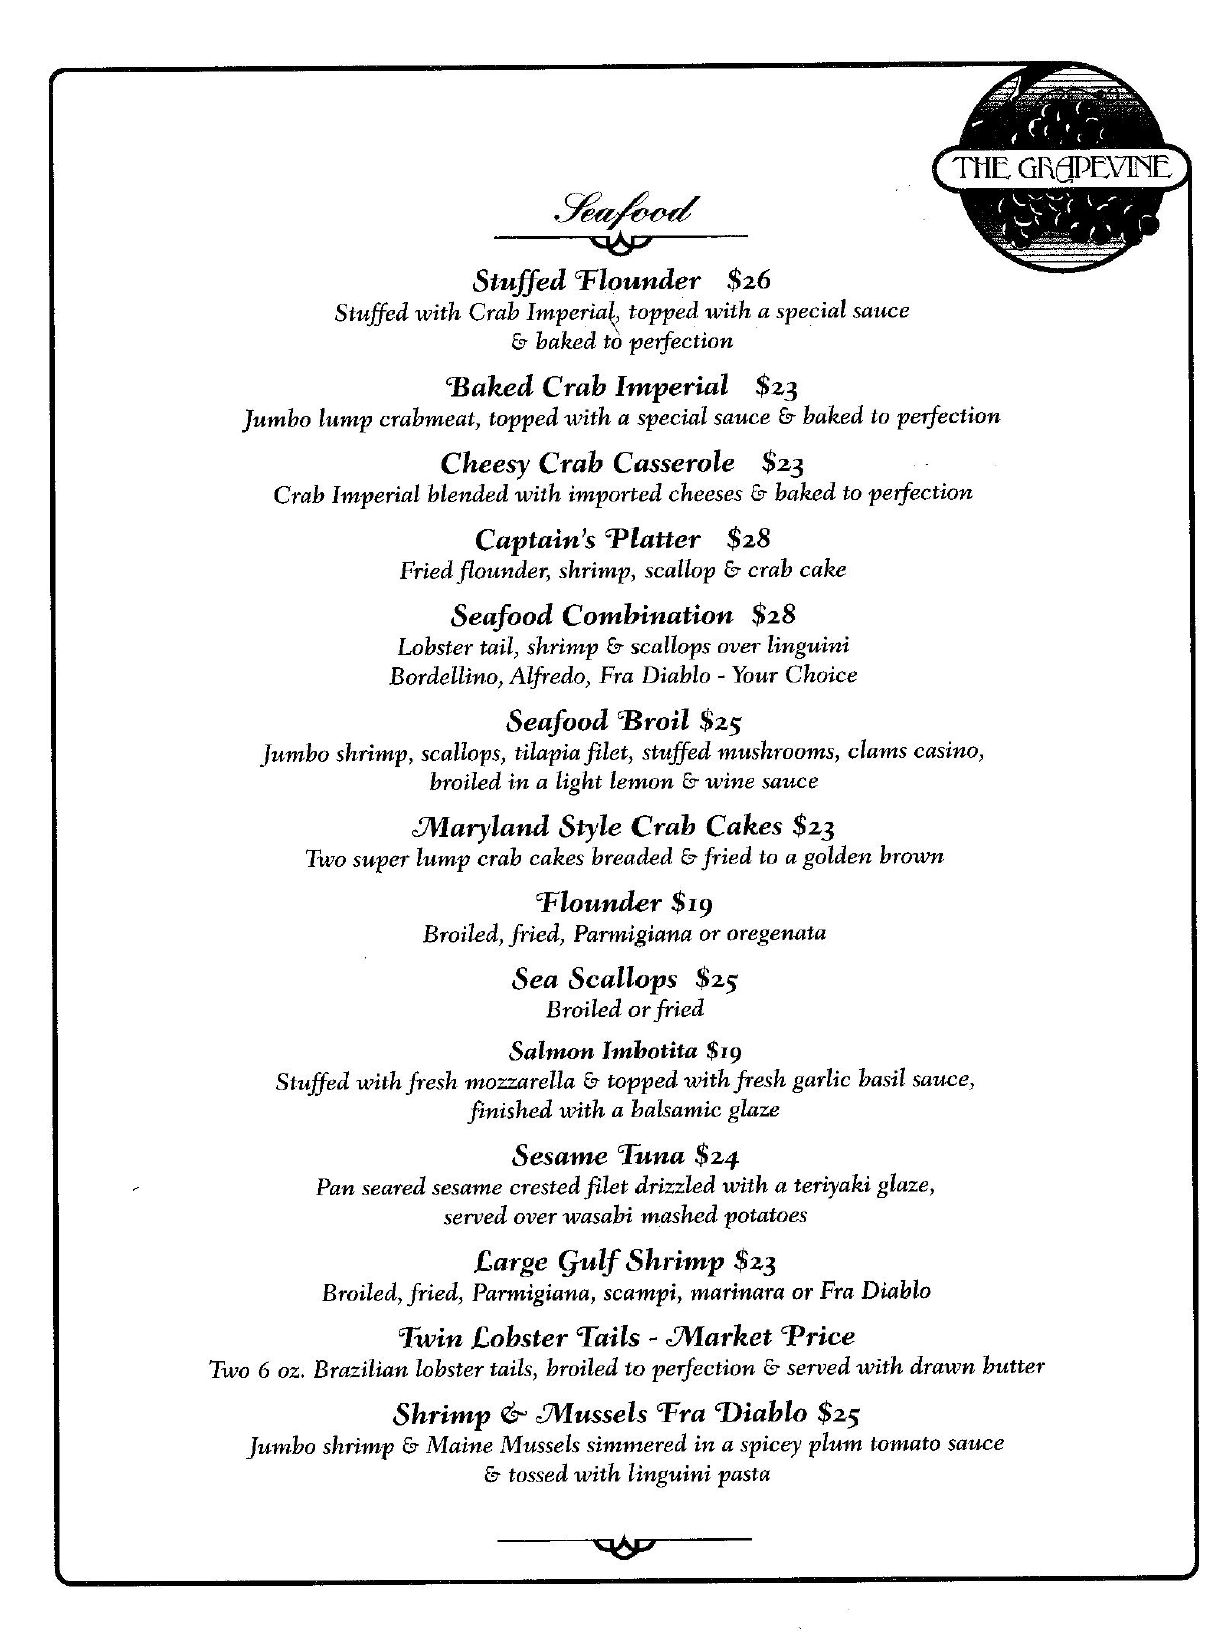 2015-01-12_1735 Our Menu  Grapevine-1 Our Menu  Grapevine-2 Our Menu  Grapevine-3 Our Menu